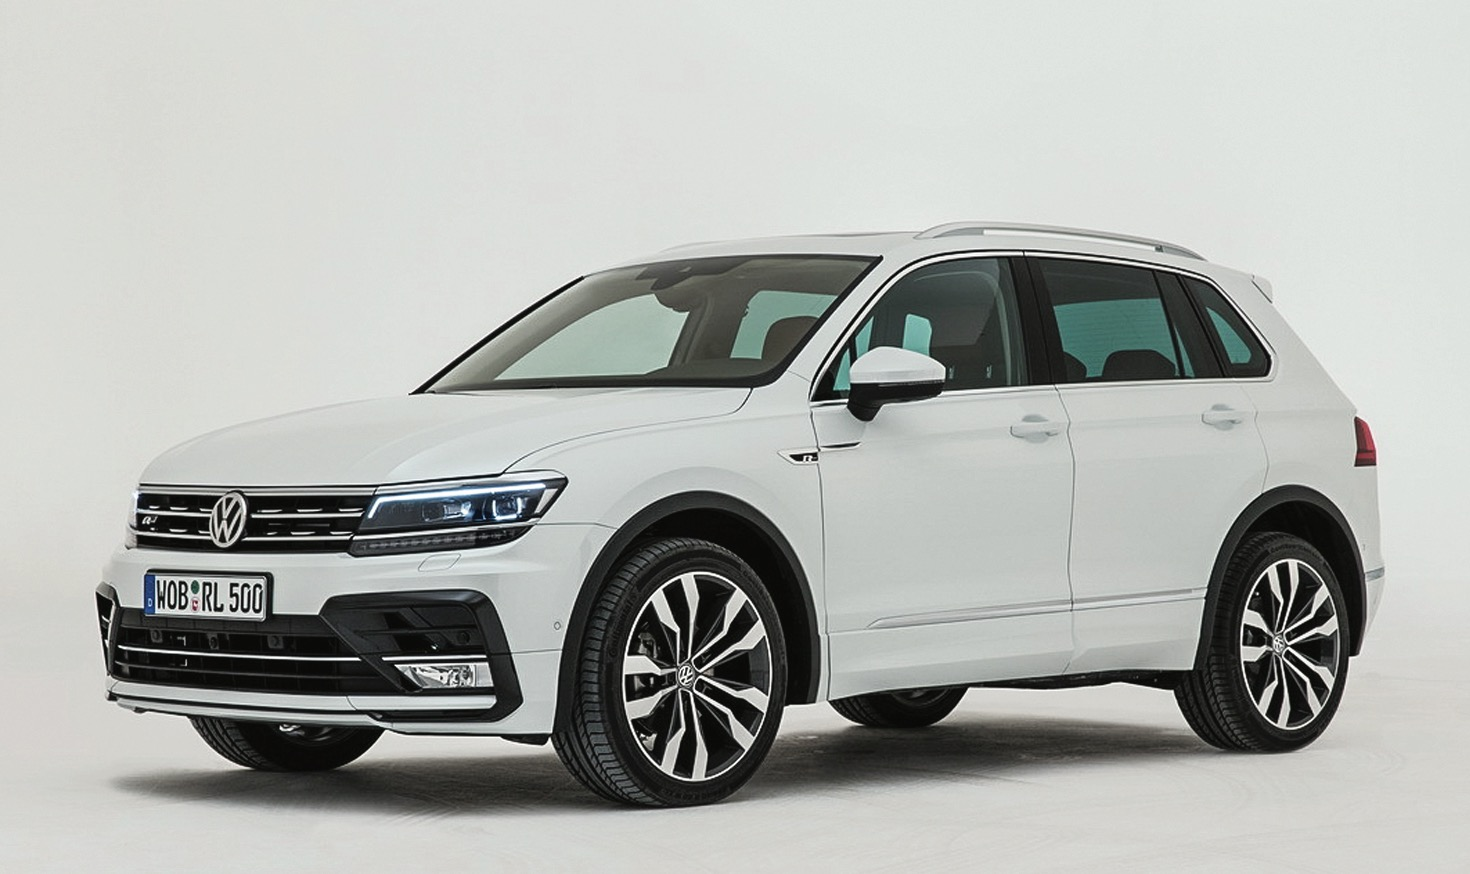 le nouveau volkswagen tiguan multiple et inventif. Black Bedroom Furniture Sets. Home Design Ideas